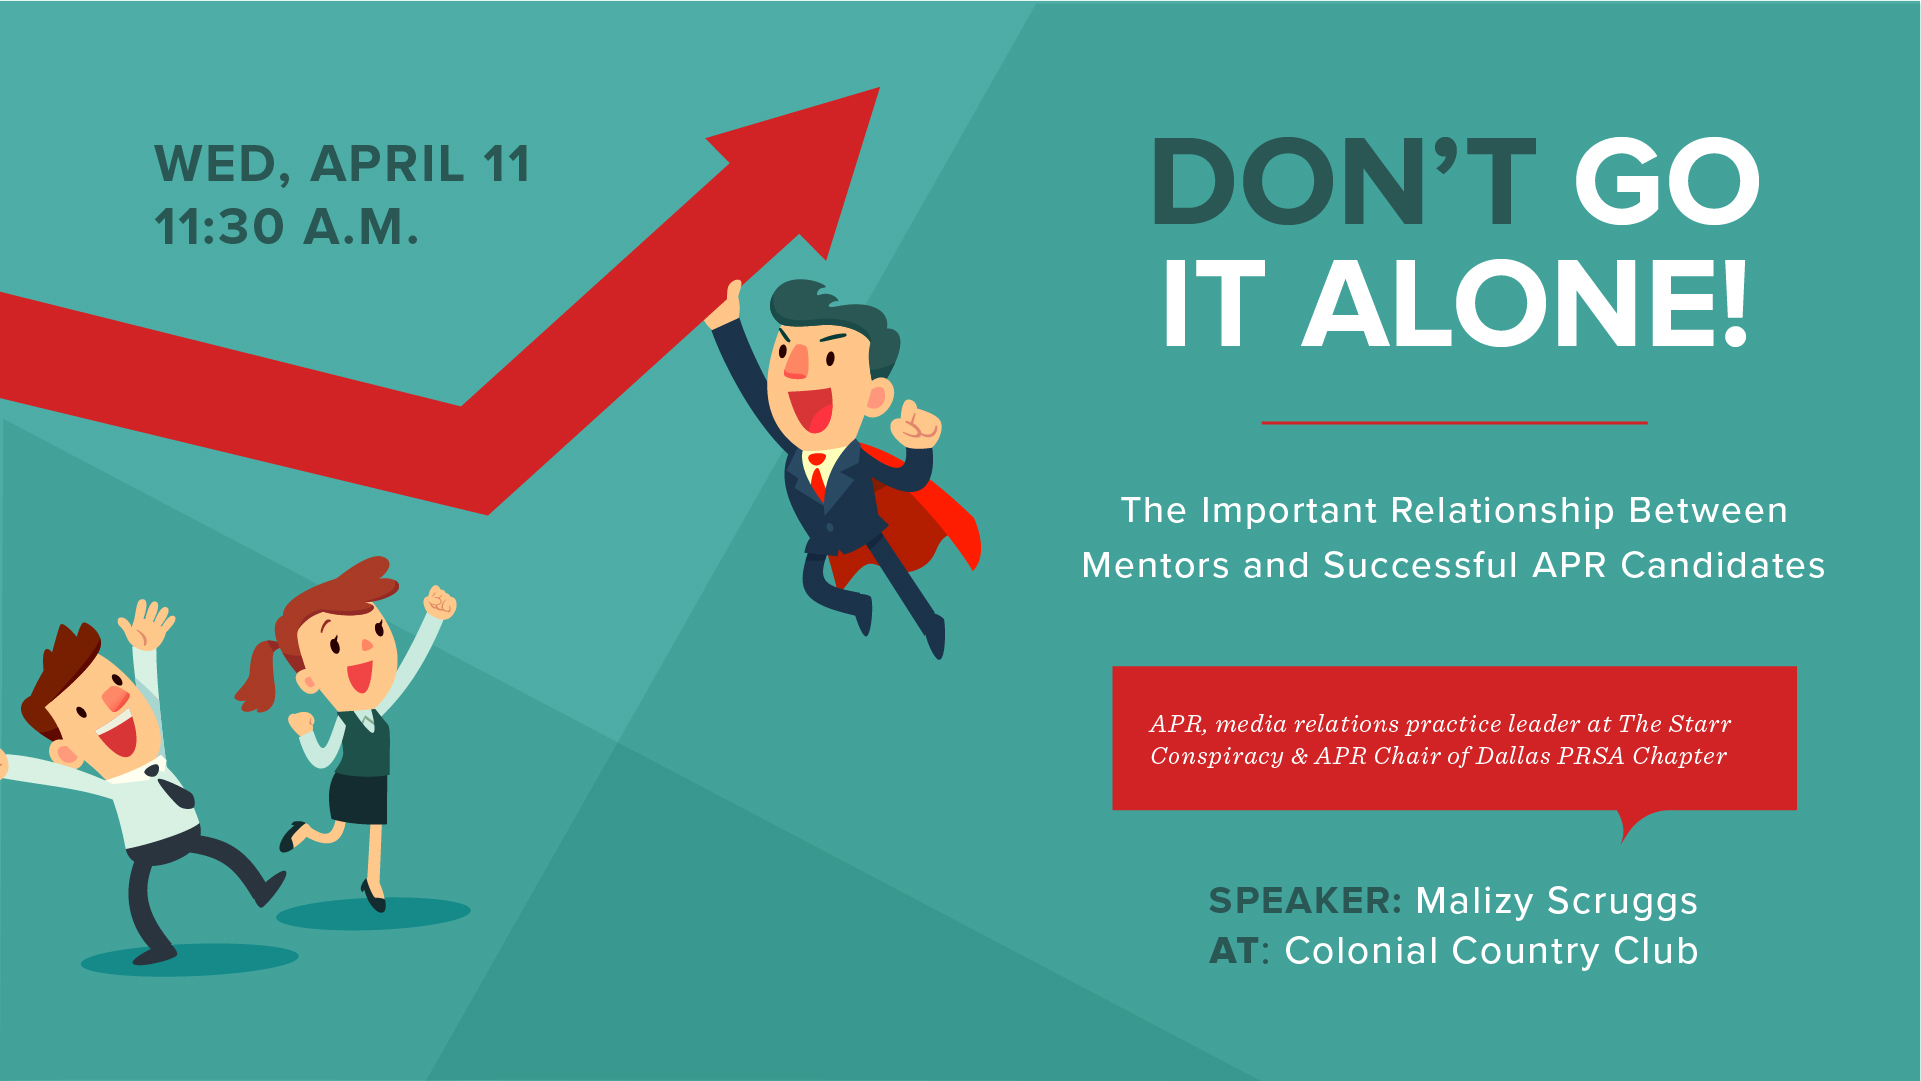 Don't Go It Alone: The Important Relationship Between Mentors and Successful APR Candidates